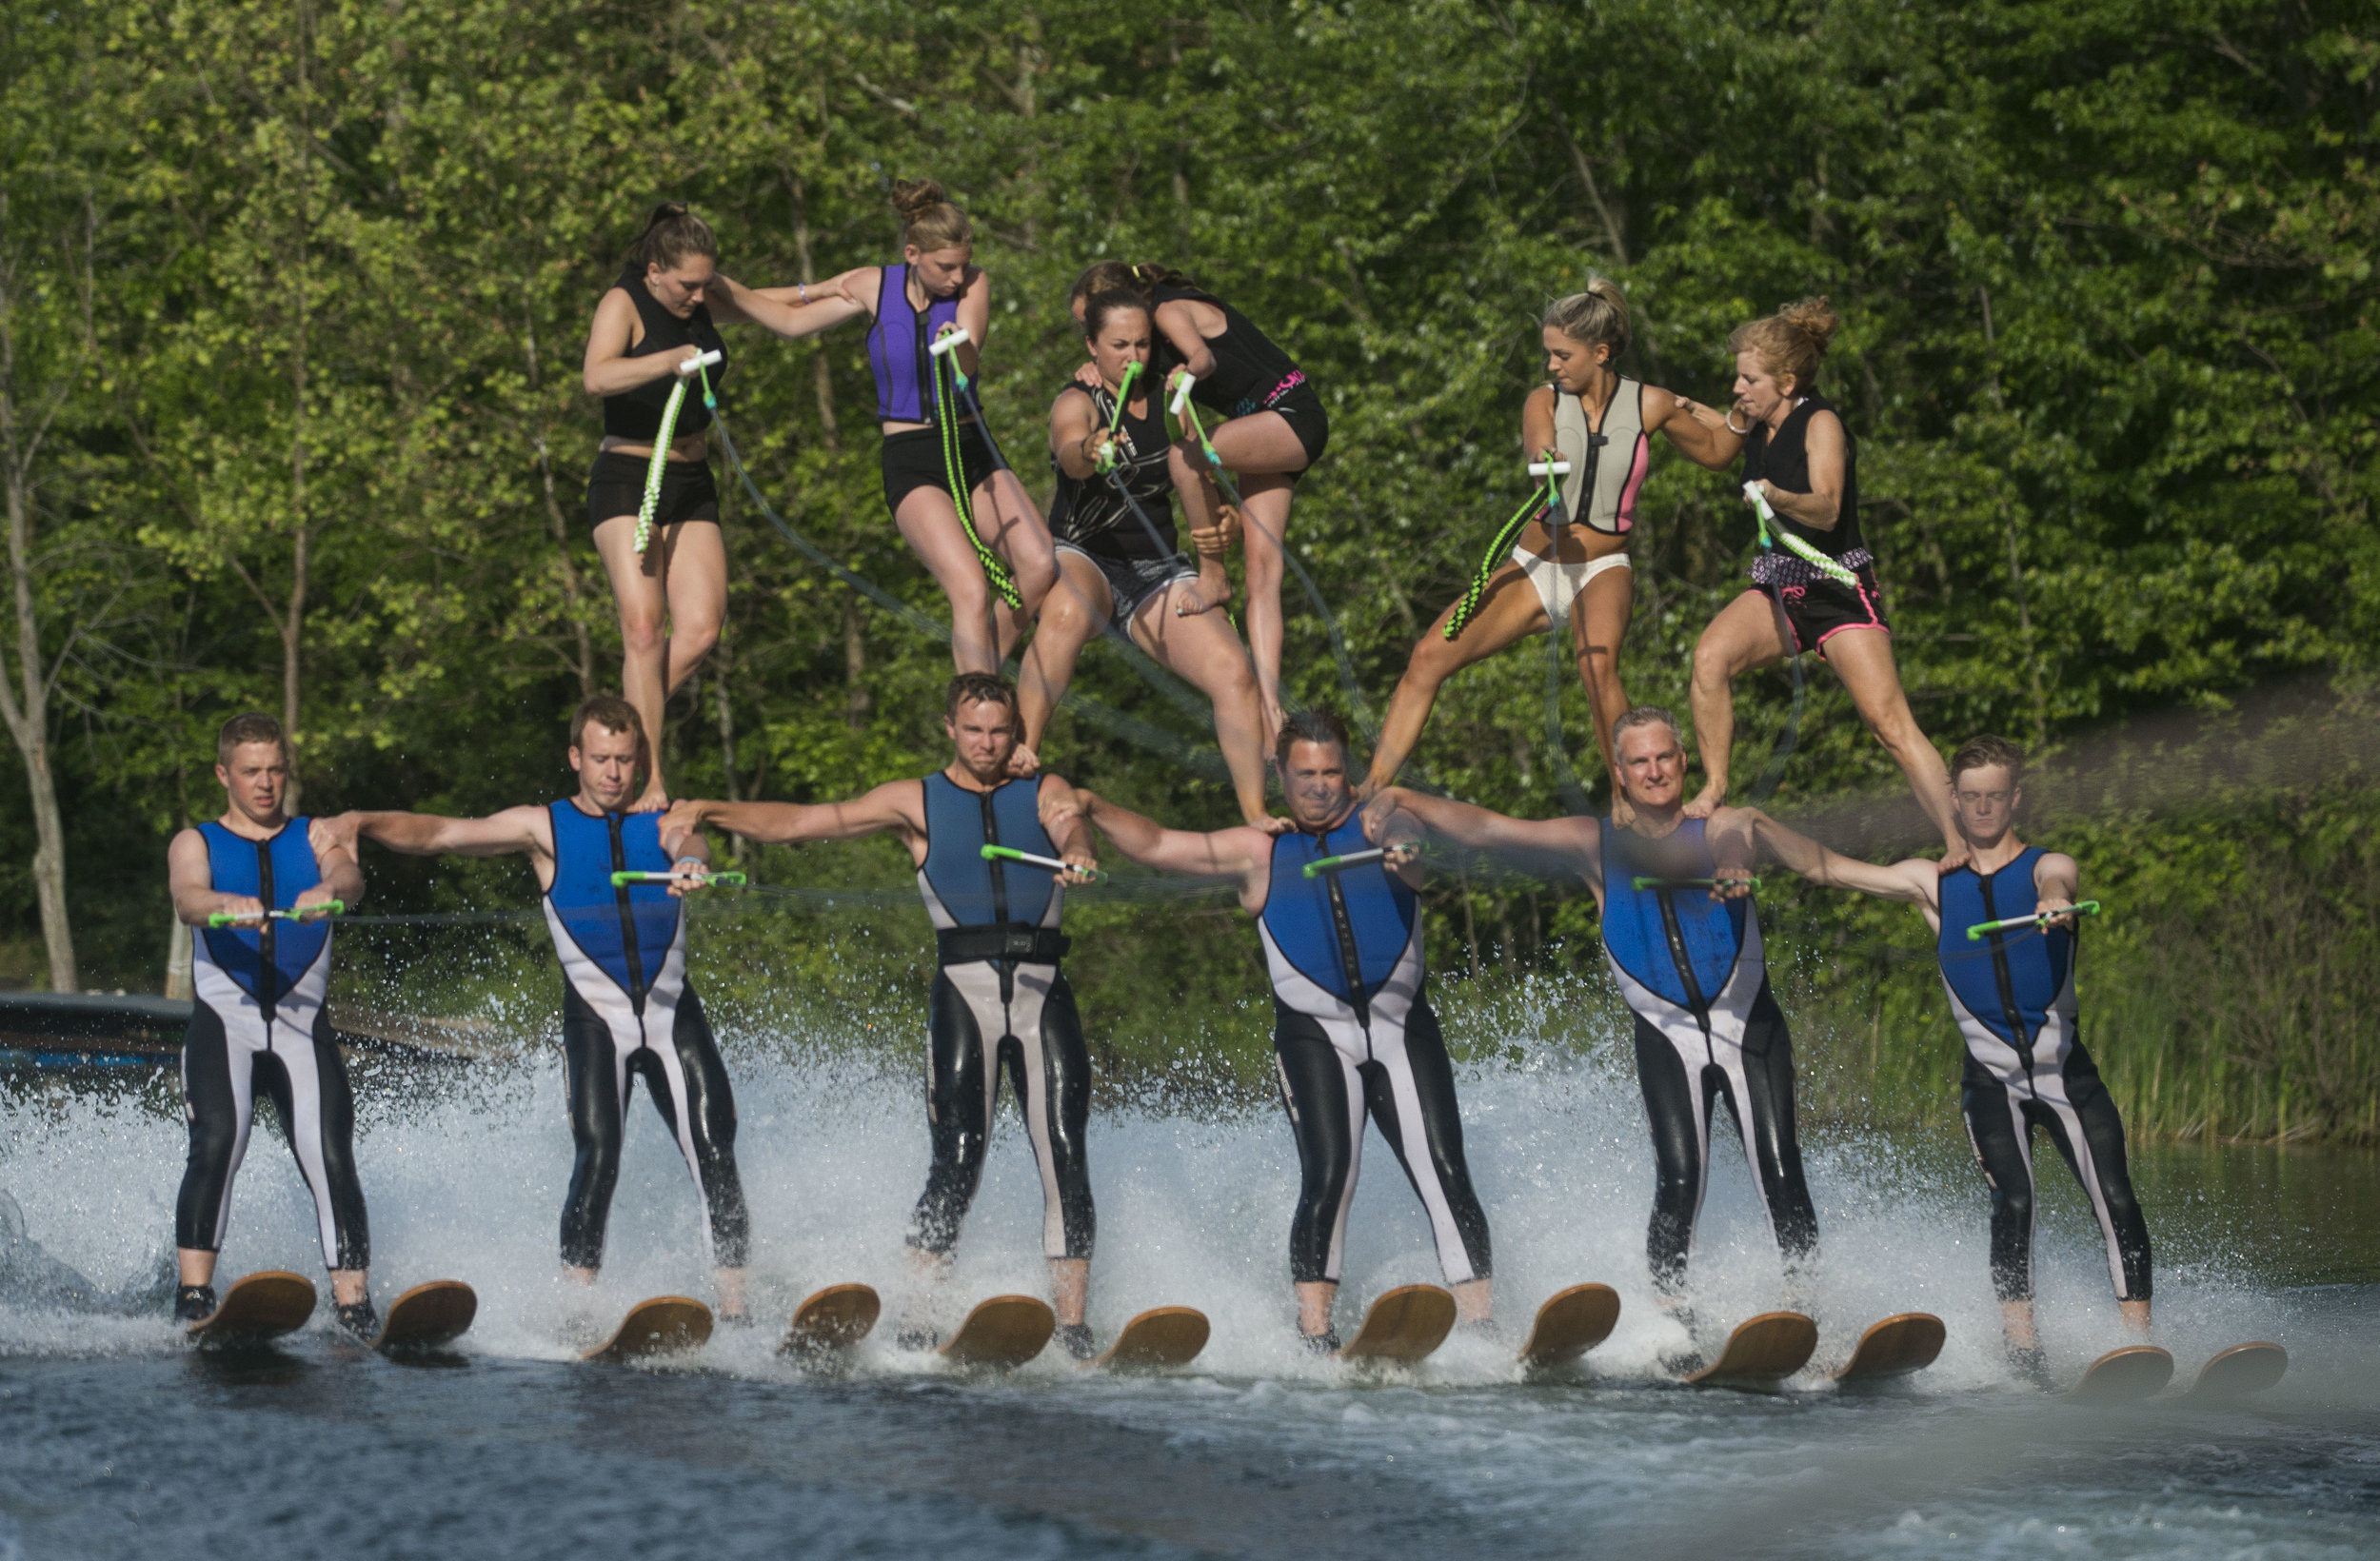 Twelve of the Lake City Skiers practice building their pyramid on June 2, 2016, at Hidden Lake. The team is preparing for their first show on Sunday, June 5, 2016.